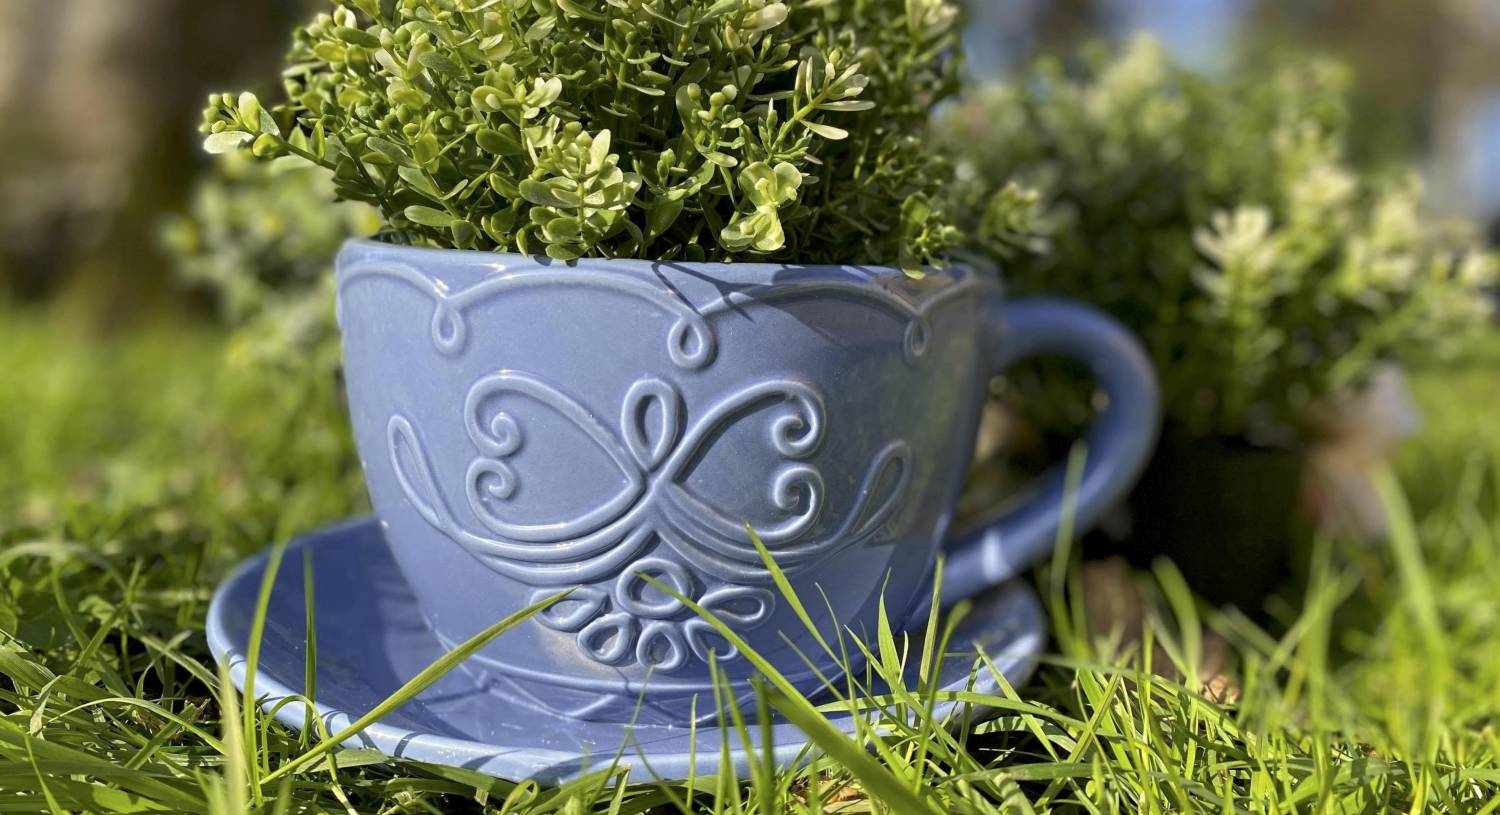 Wish List: Embrace the outdoors with lovely lanterns, cute ceramics and designer jugs